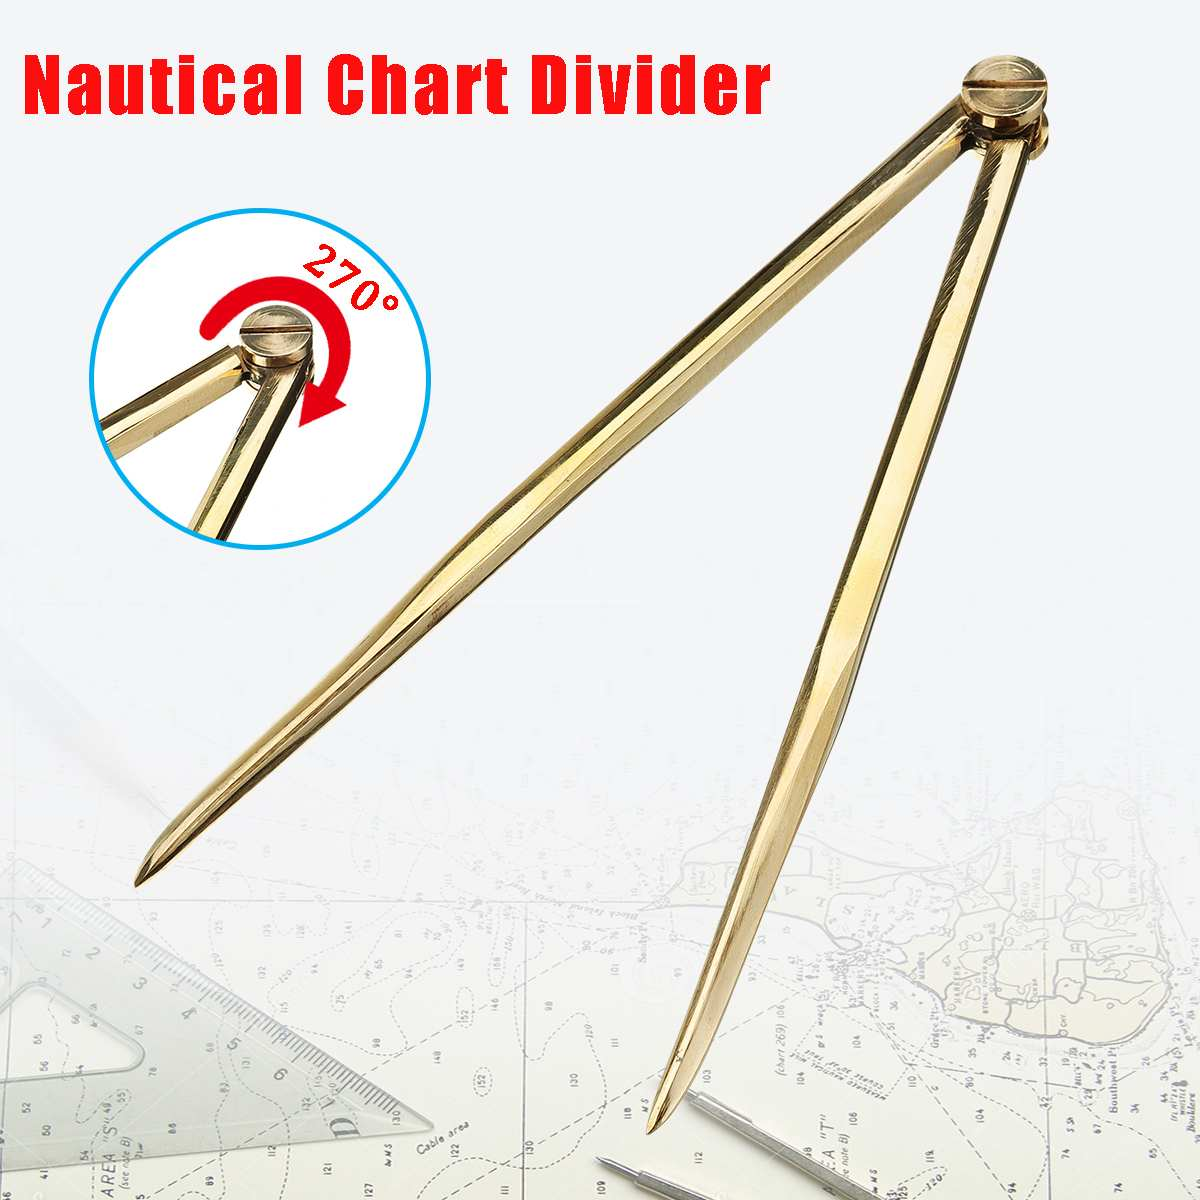 168mm Nautical Chart Straight Divider Solid Brass Marine Dividing Tool-Compass Portable No Rust For Architects Marine Navigation